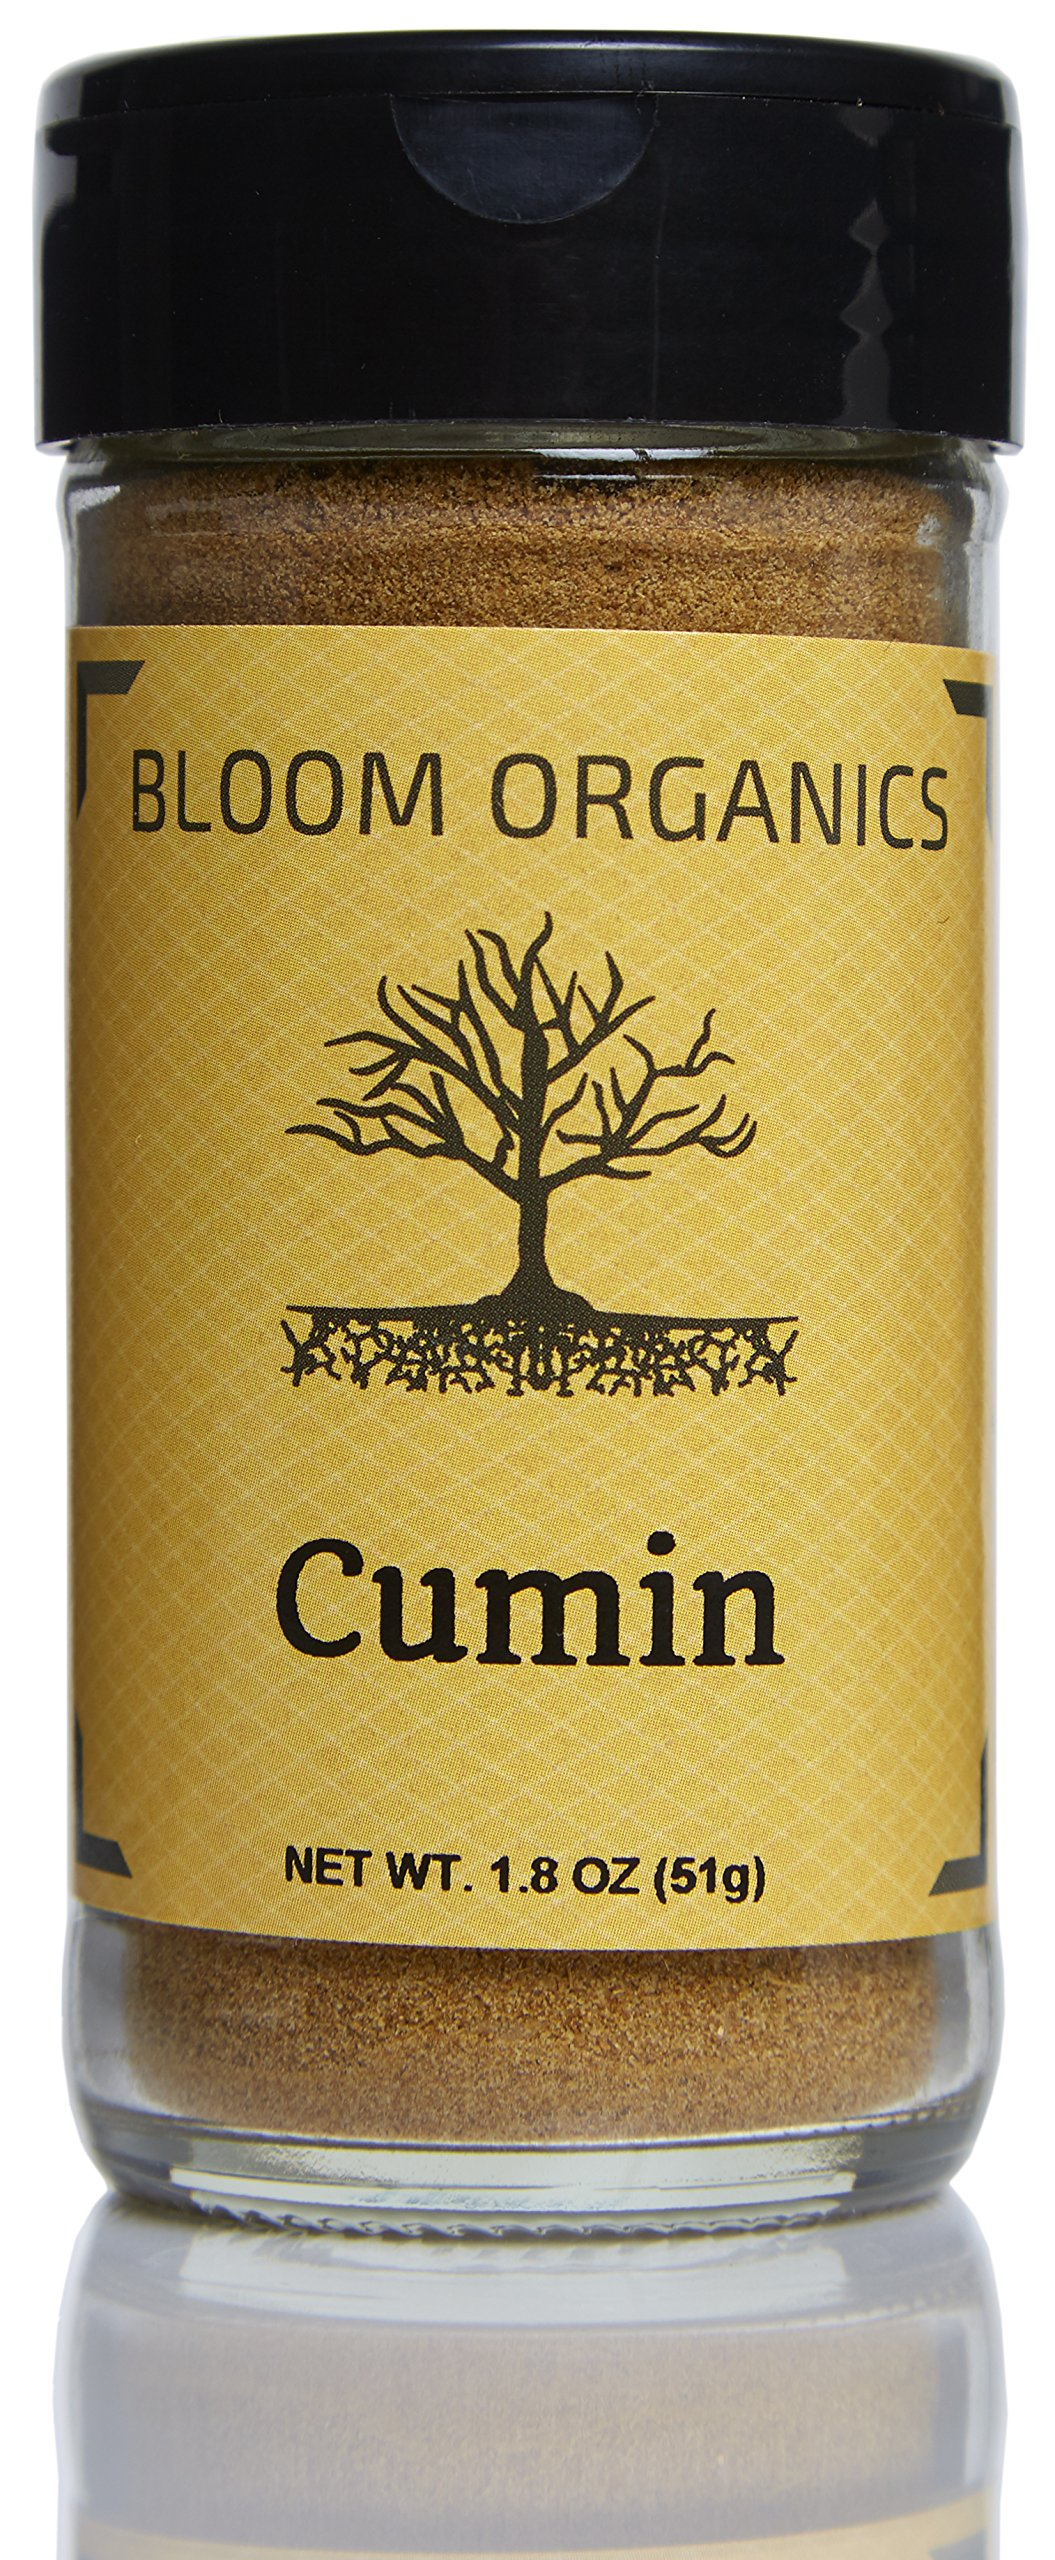 Bloom Organics Cumin USDA Certified Organic, 1.8 oz - Glass Jar